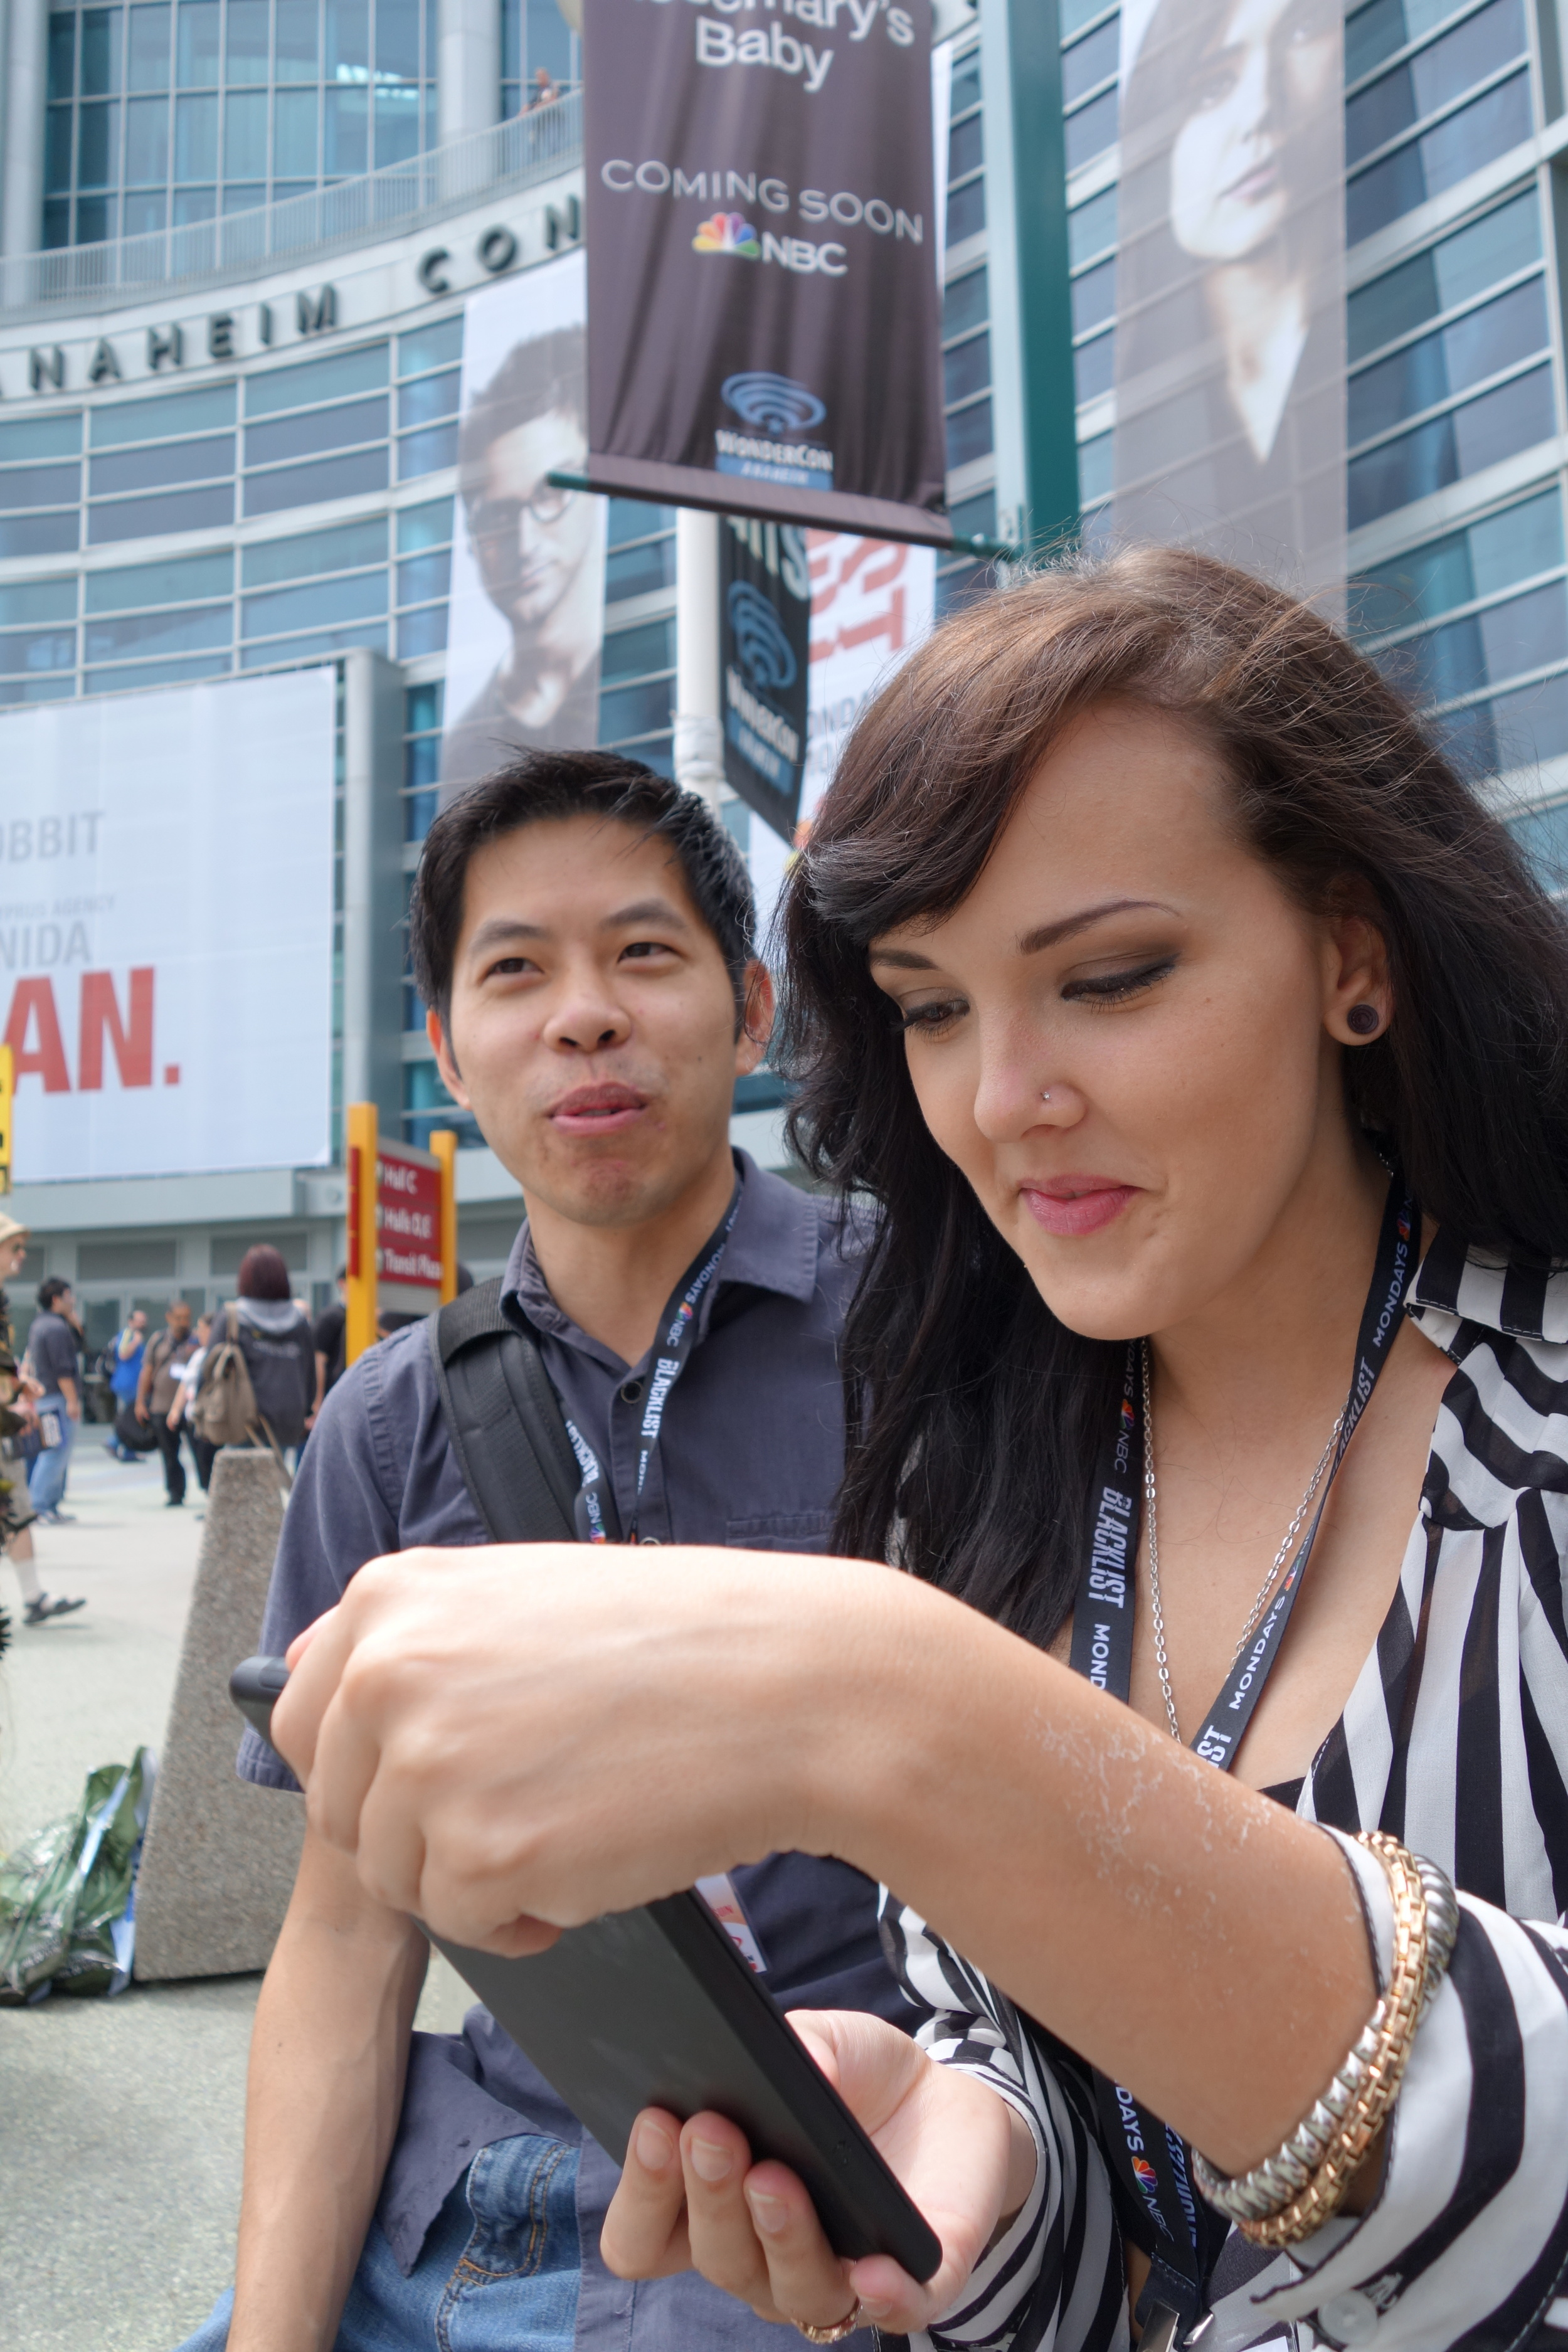 Darshelle going nuts on my Sony RX100 and my phone!